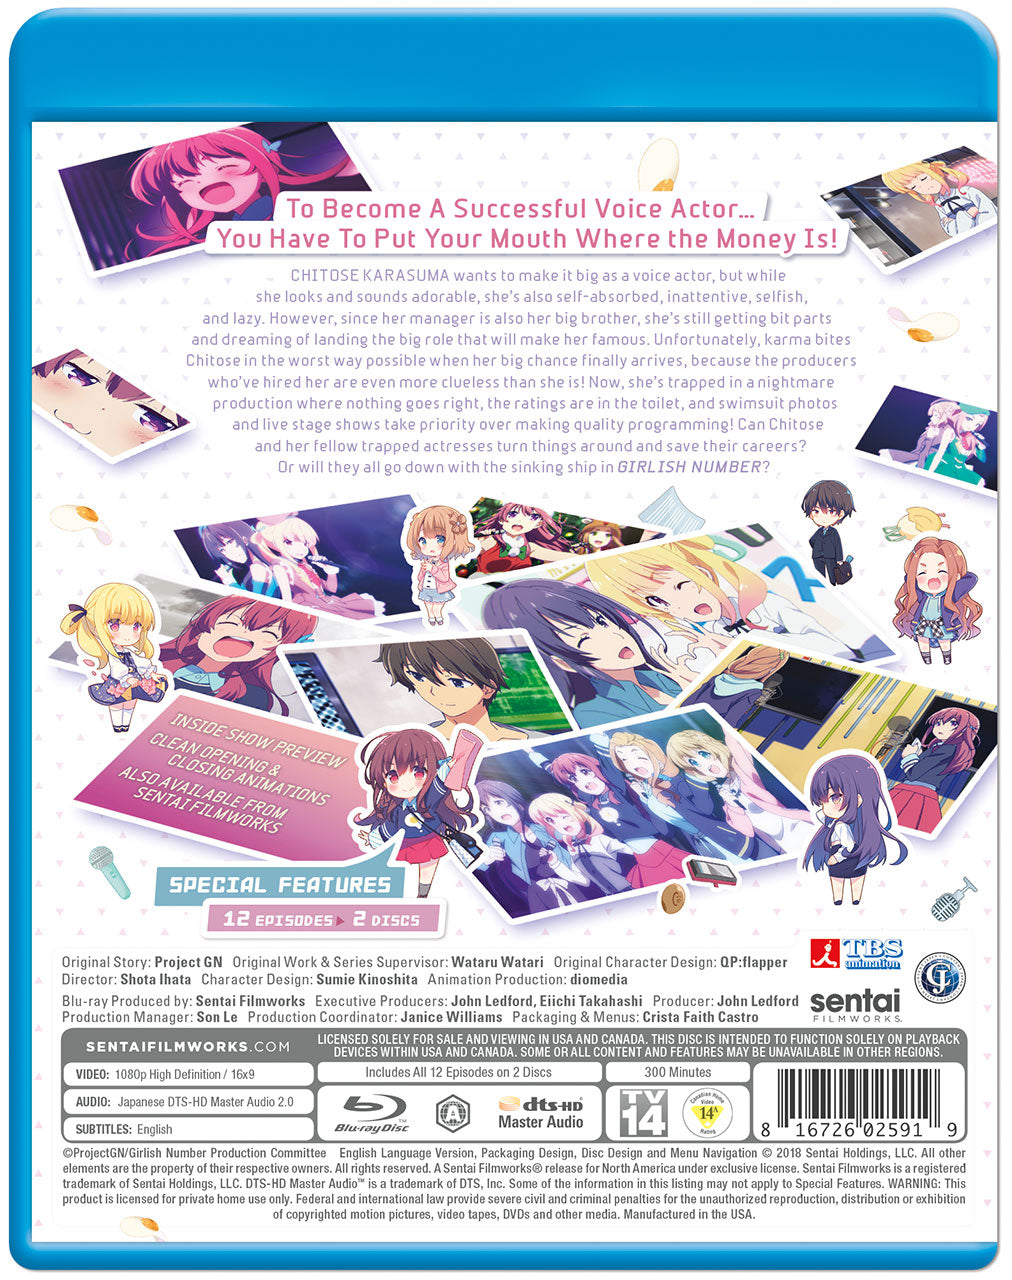 Girlish Number Complete Collection Blu-ray Back Cover